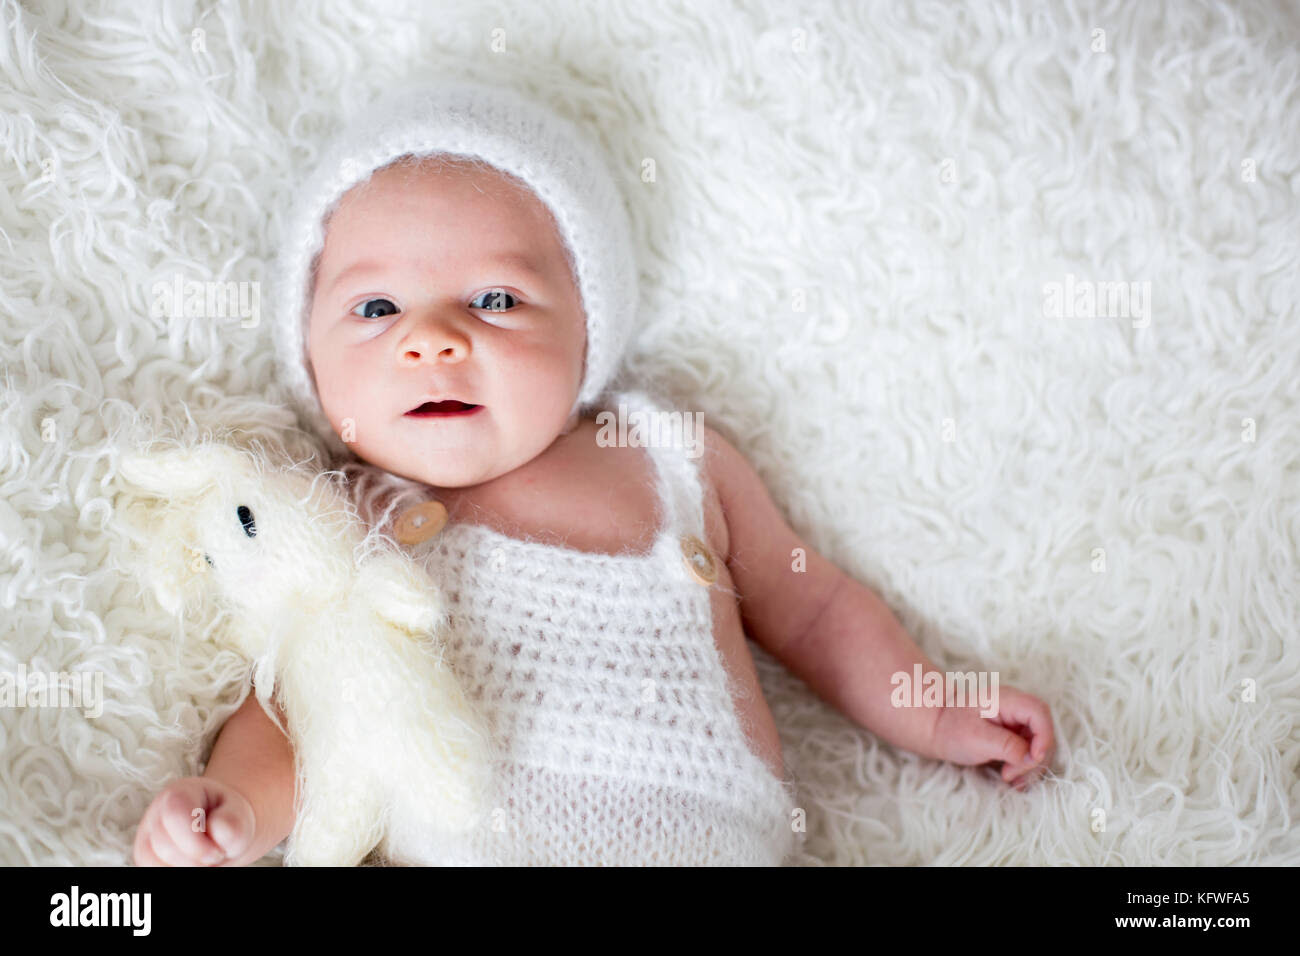 Beautiful Newborn Baby Boy Looking Curiously At Camera Smiling